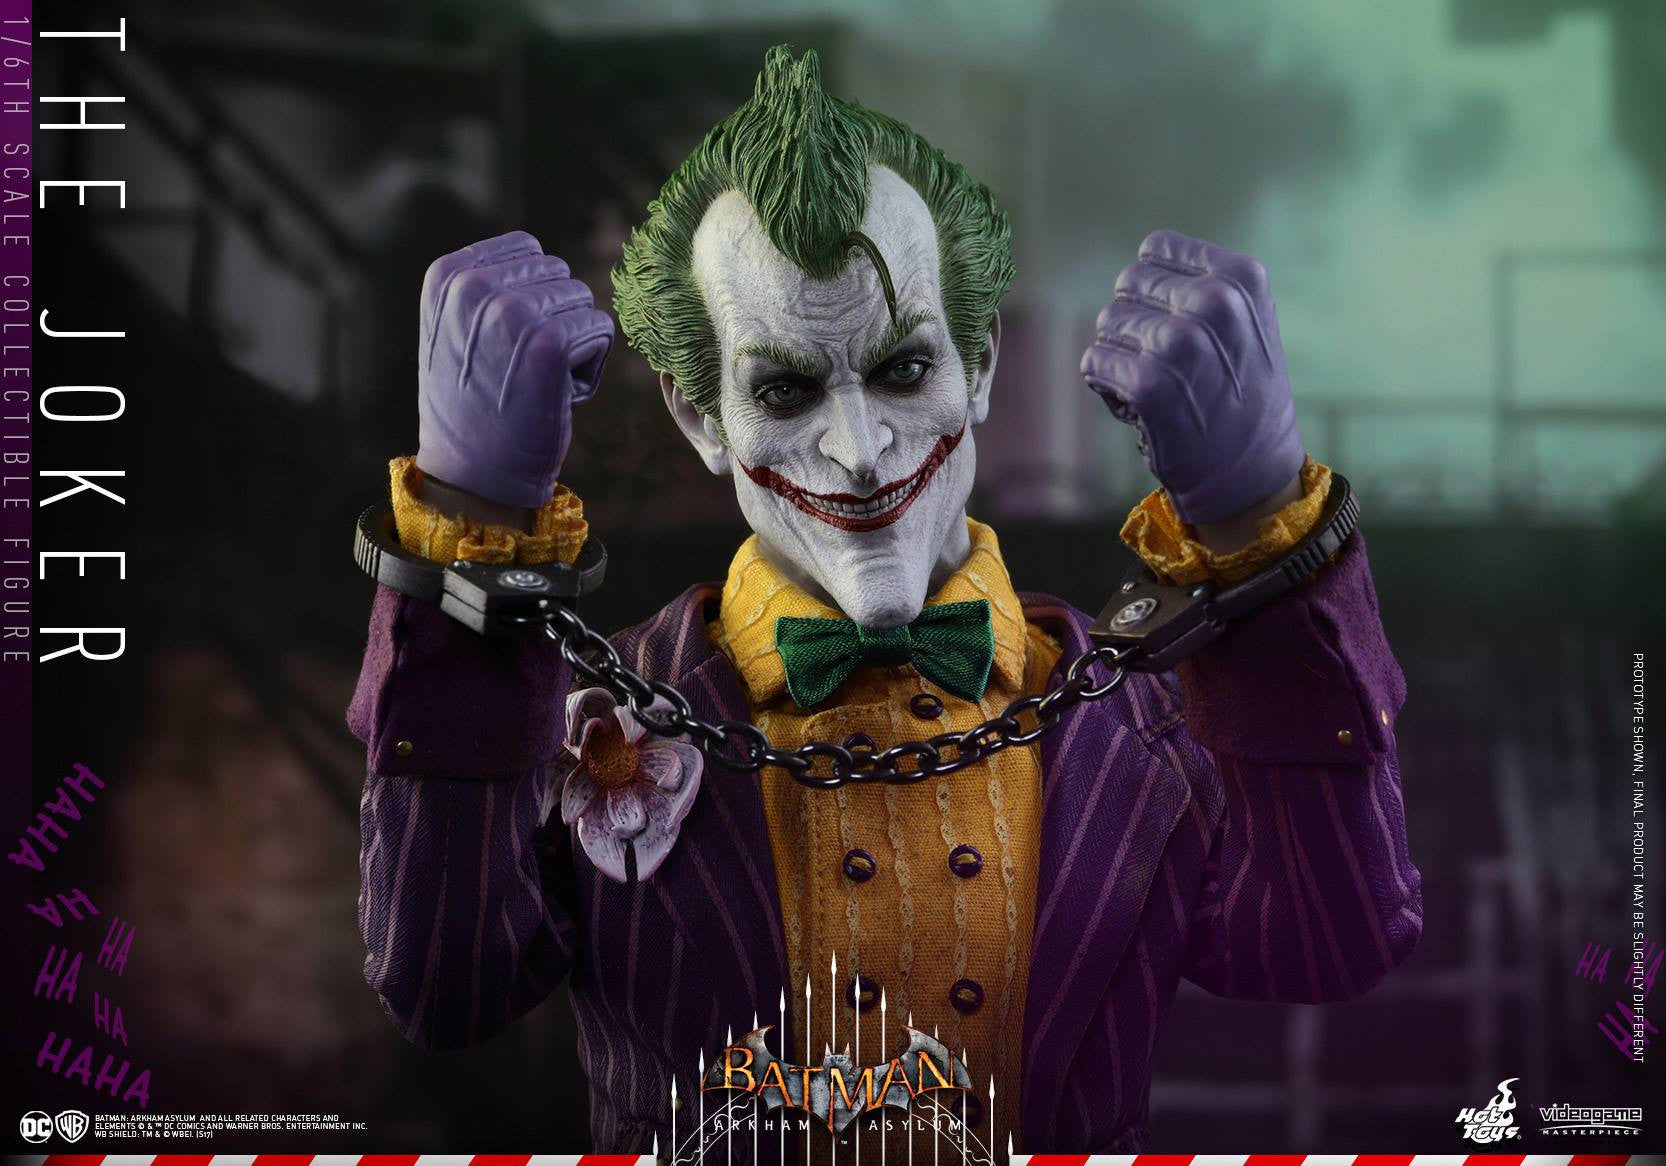 Hot Toys - VGM27 - Batman: Arkham Asylum - The Joker - Marvelous Toys - 8